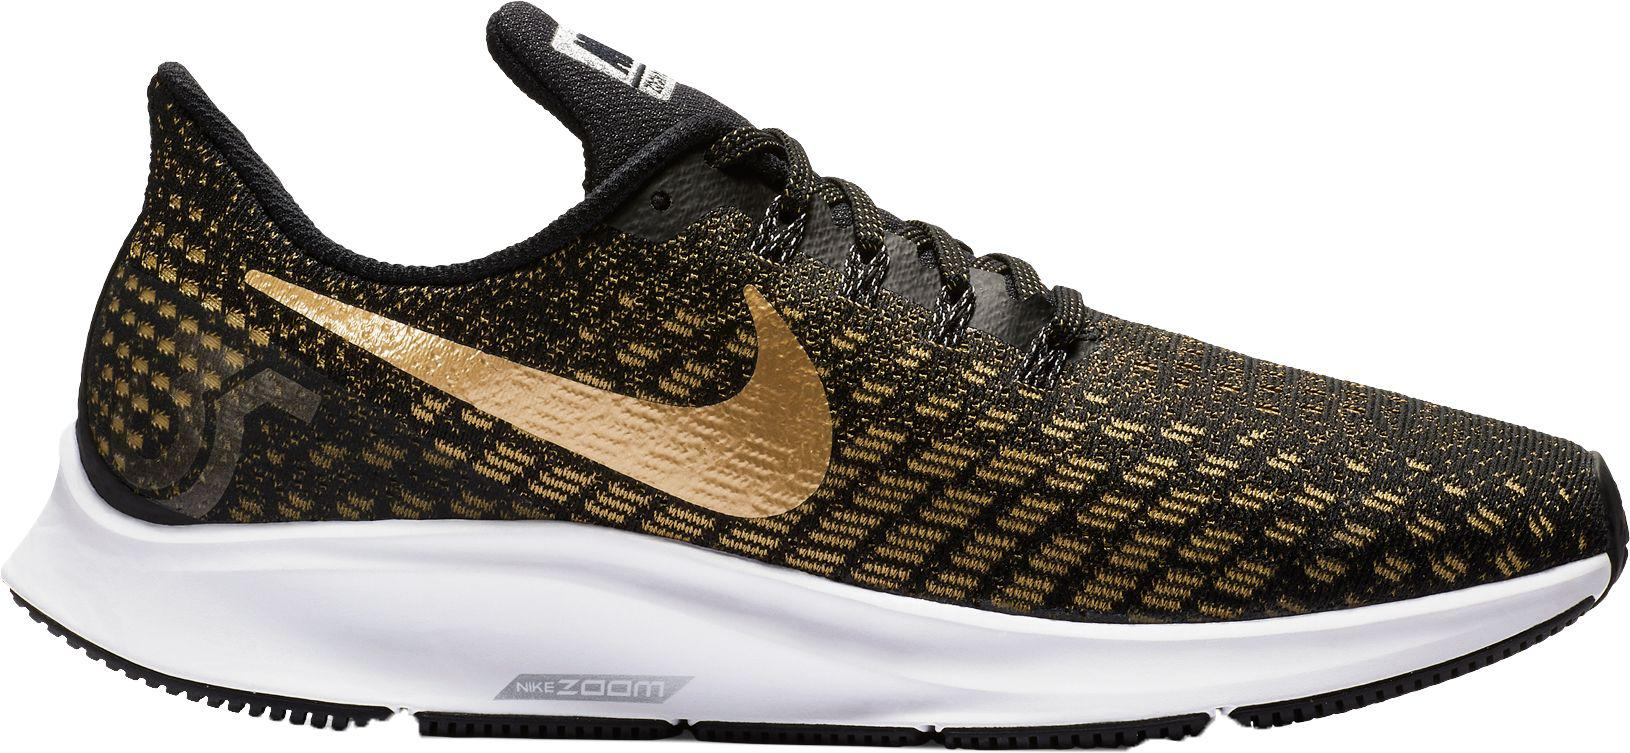 5d24fde4bbbb Lyst - Nike Air Zoom Pegasus 35 Running Shoes in Black - Save 28%